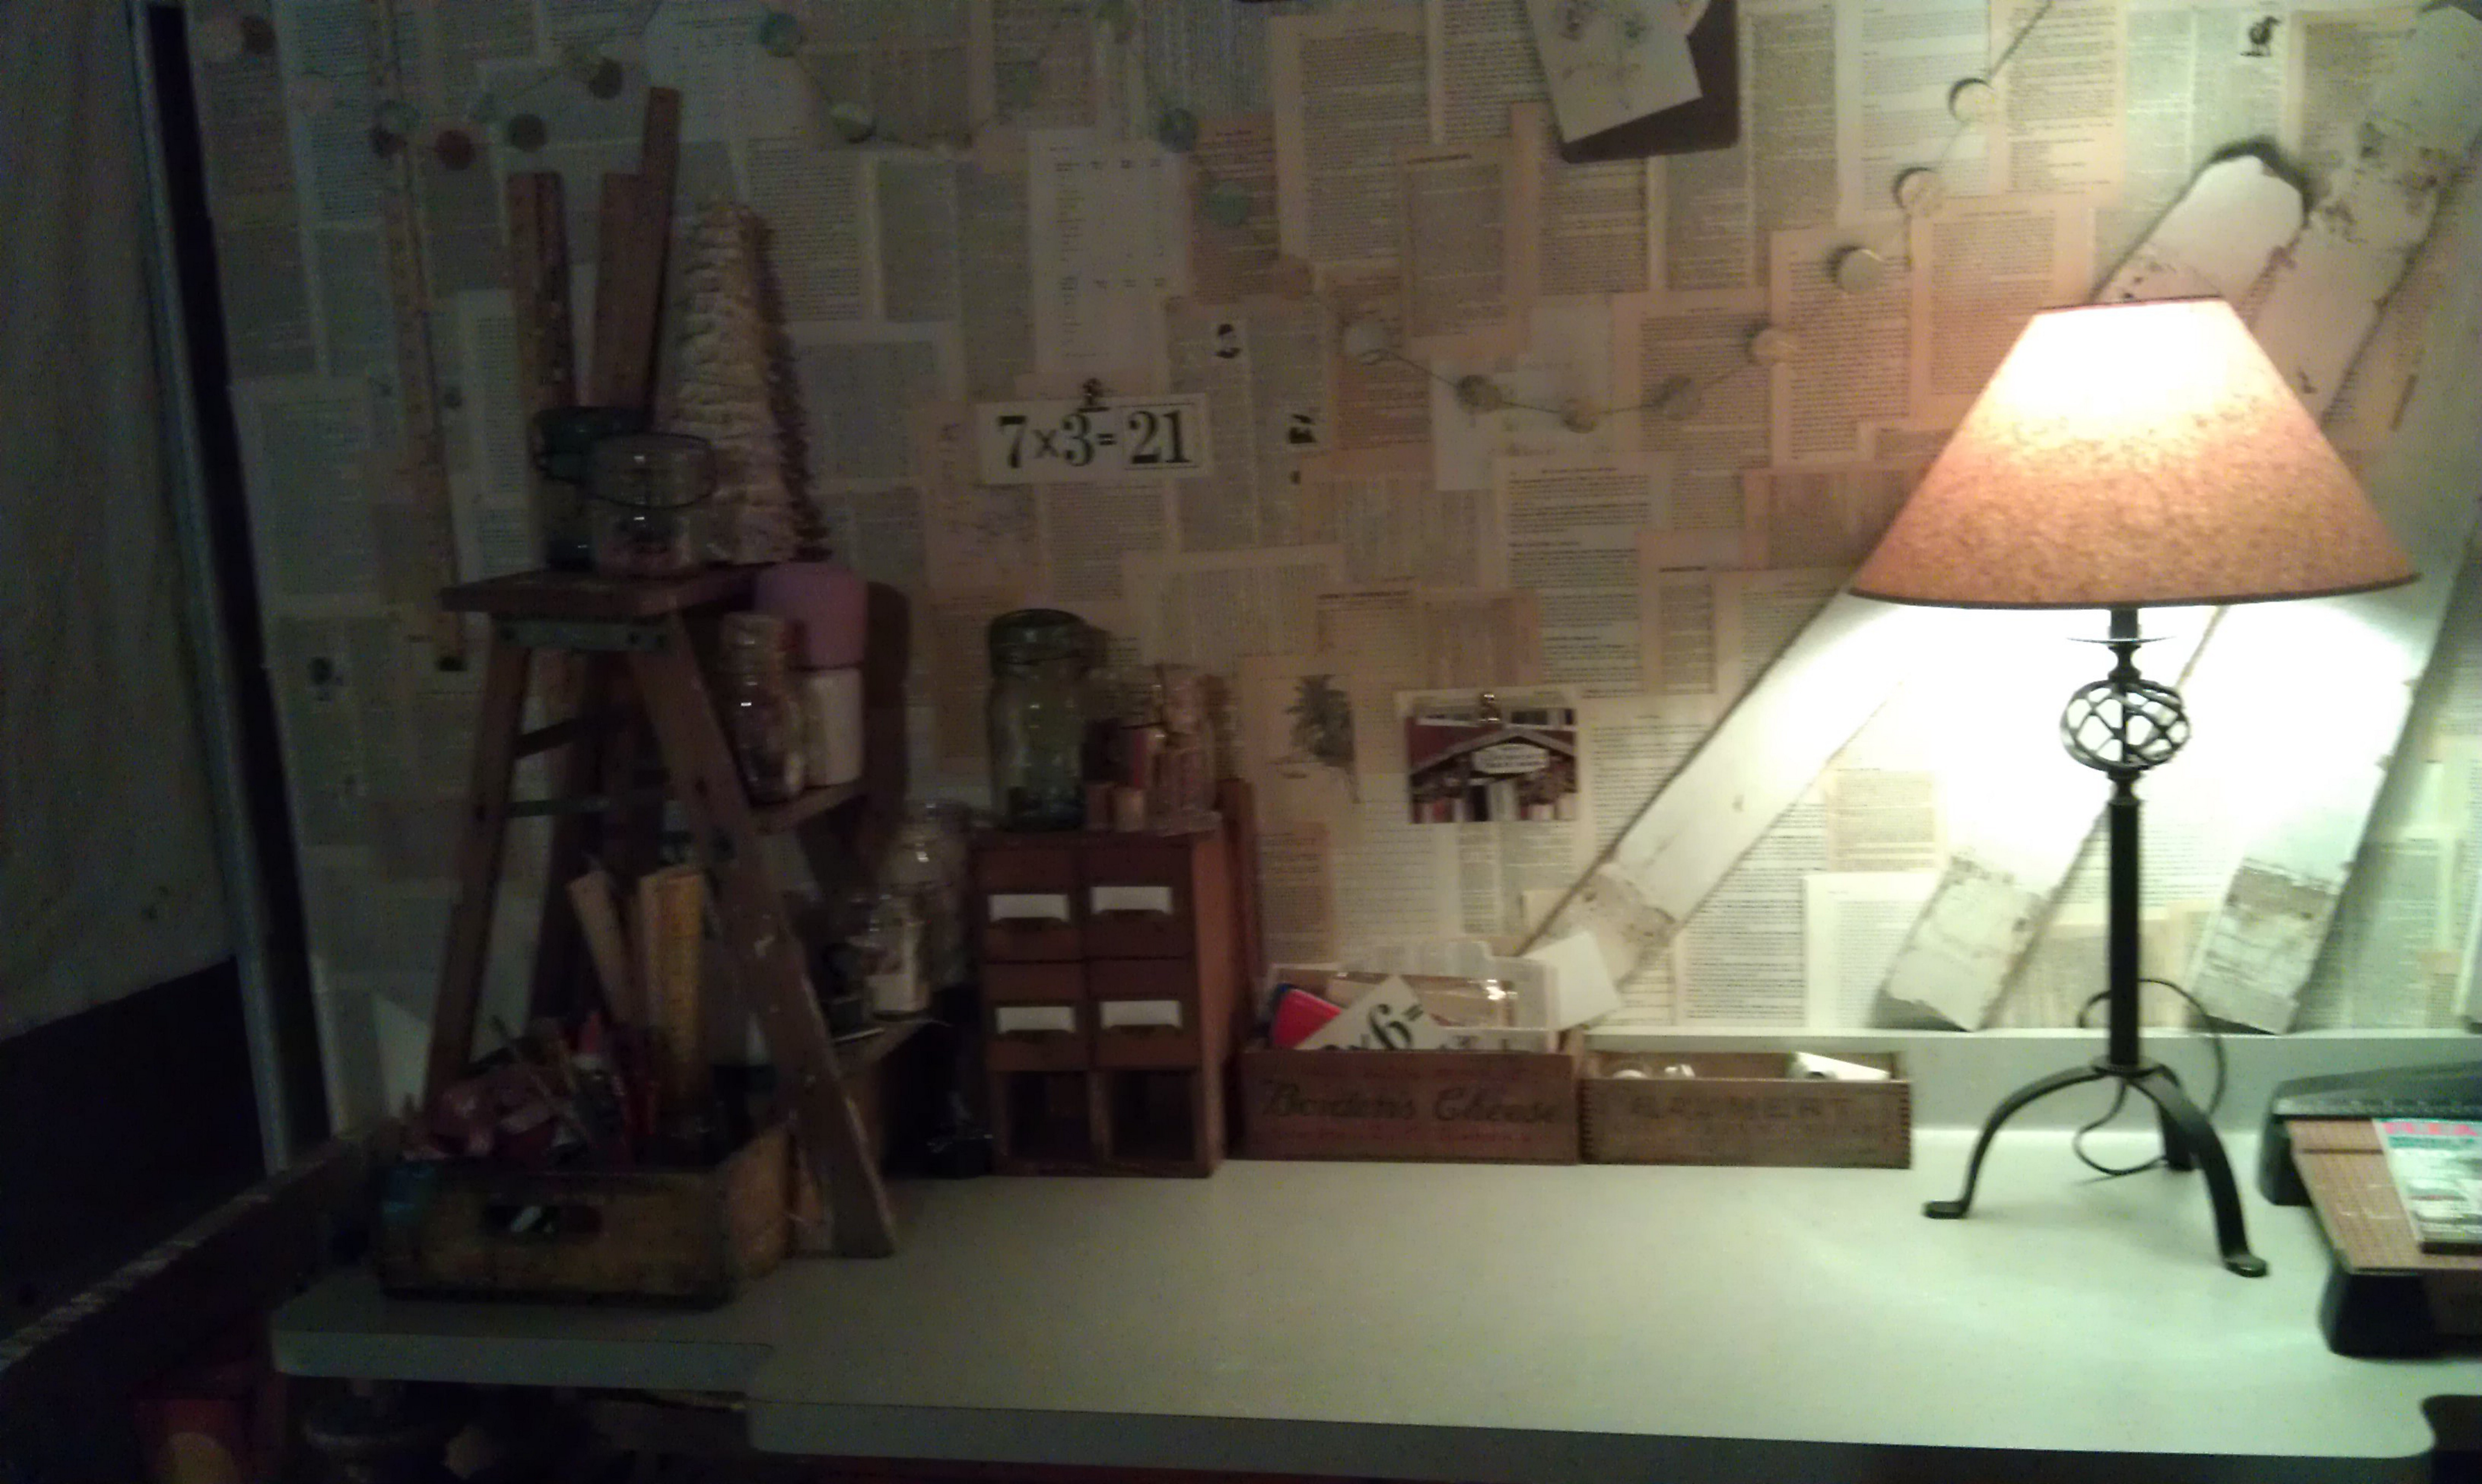 Joshua Fraass, a junior at St. Joe's, makes his own product line out of recycled material. this is his basement studio